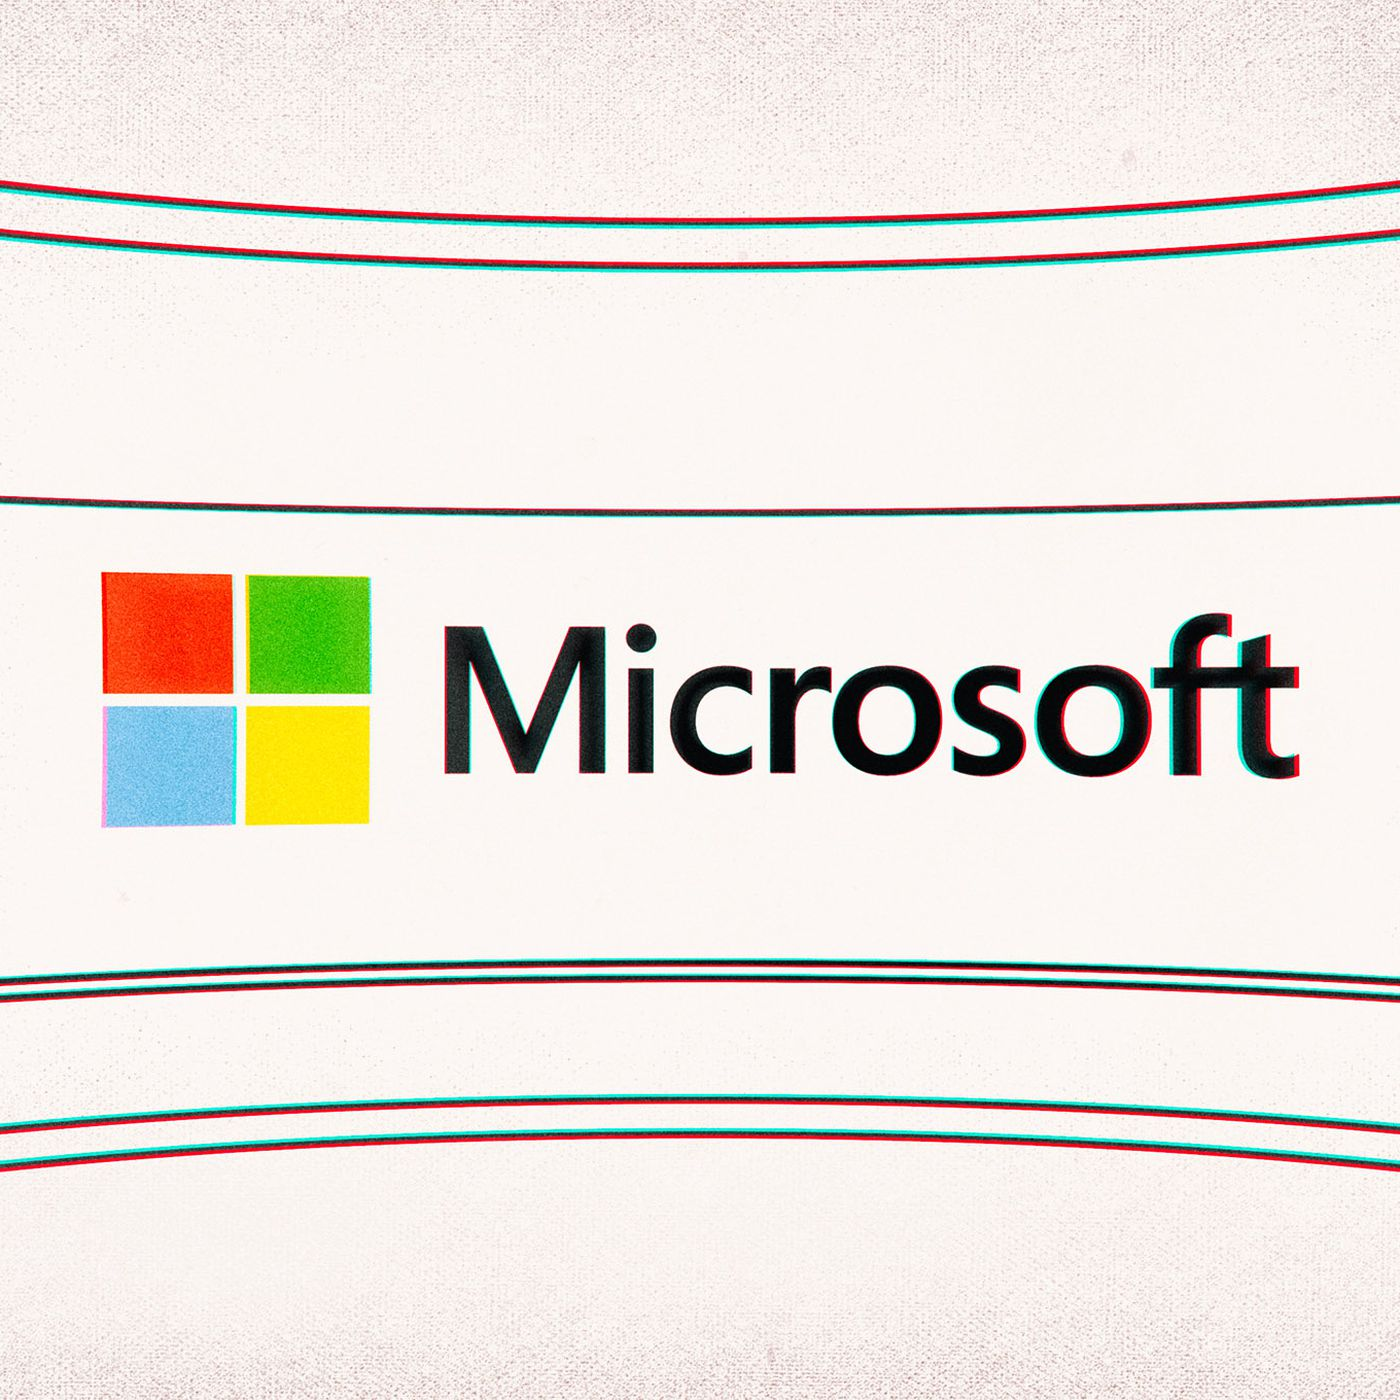 theverge.com - Tom Warren - You can now sign into a Microsoft Account without a password using a security key